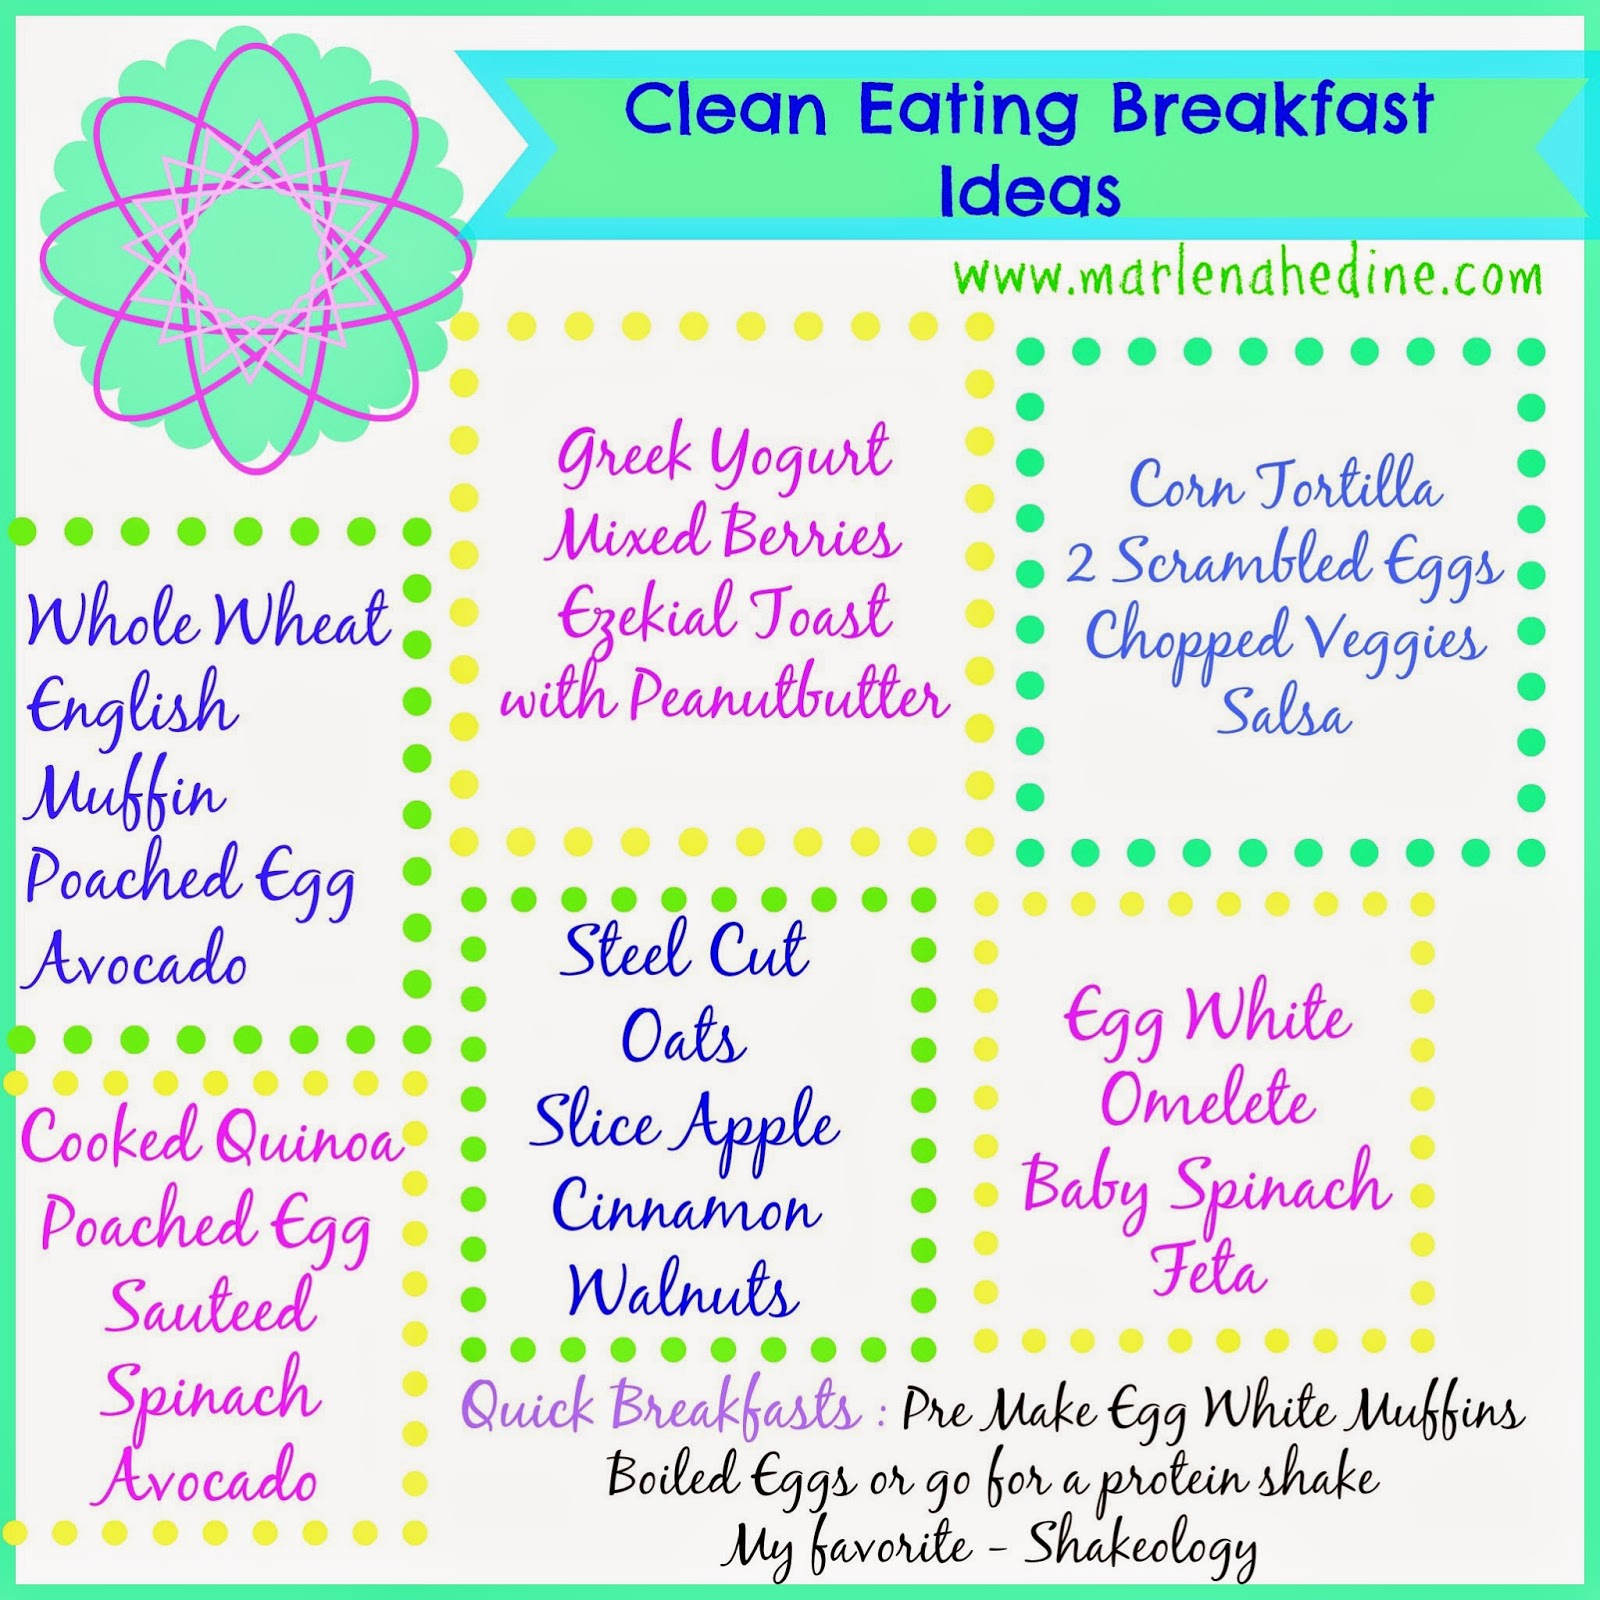 clean eating breakfast ideas, clean eating, healthy breakfast, clean eating